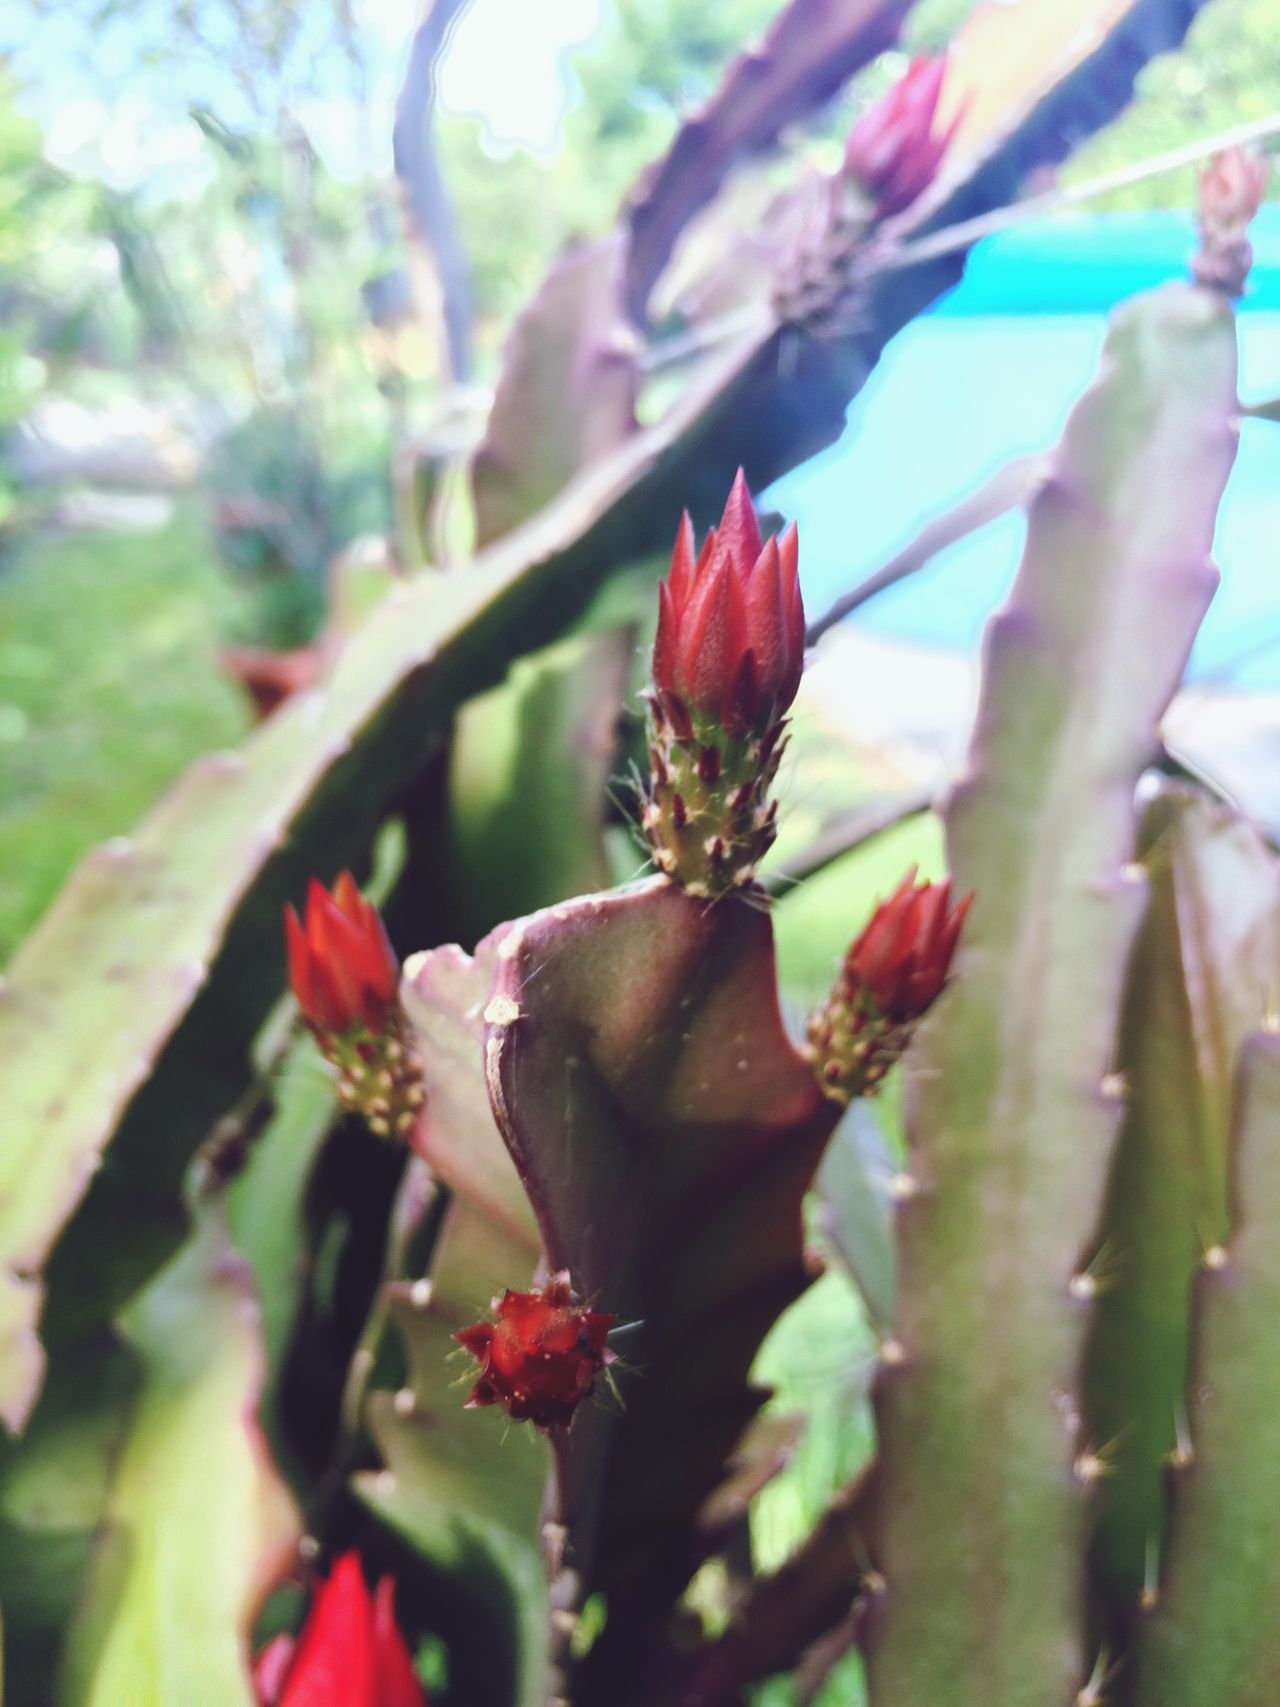 Cactus flowers looks like a fire Flame Fire Cactus Cactus Flower Cactus Garden Flowers Flame Flower Garden Photography Beauty In Nature Nature_collection Nature Photography Flowers,Plants & Garden Garden Red Red Flower